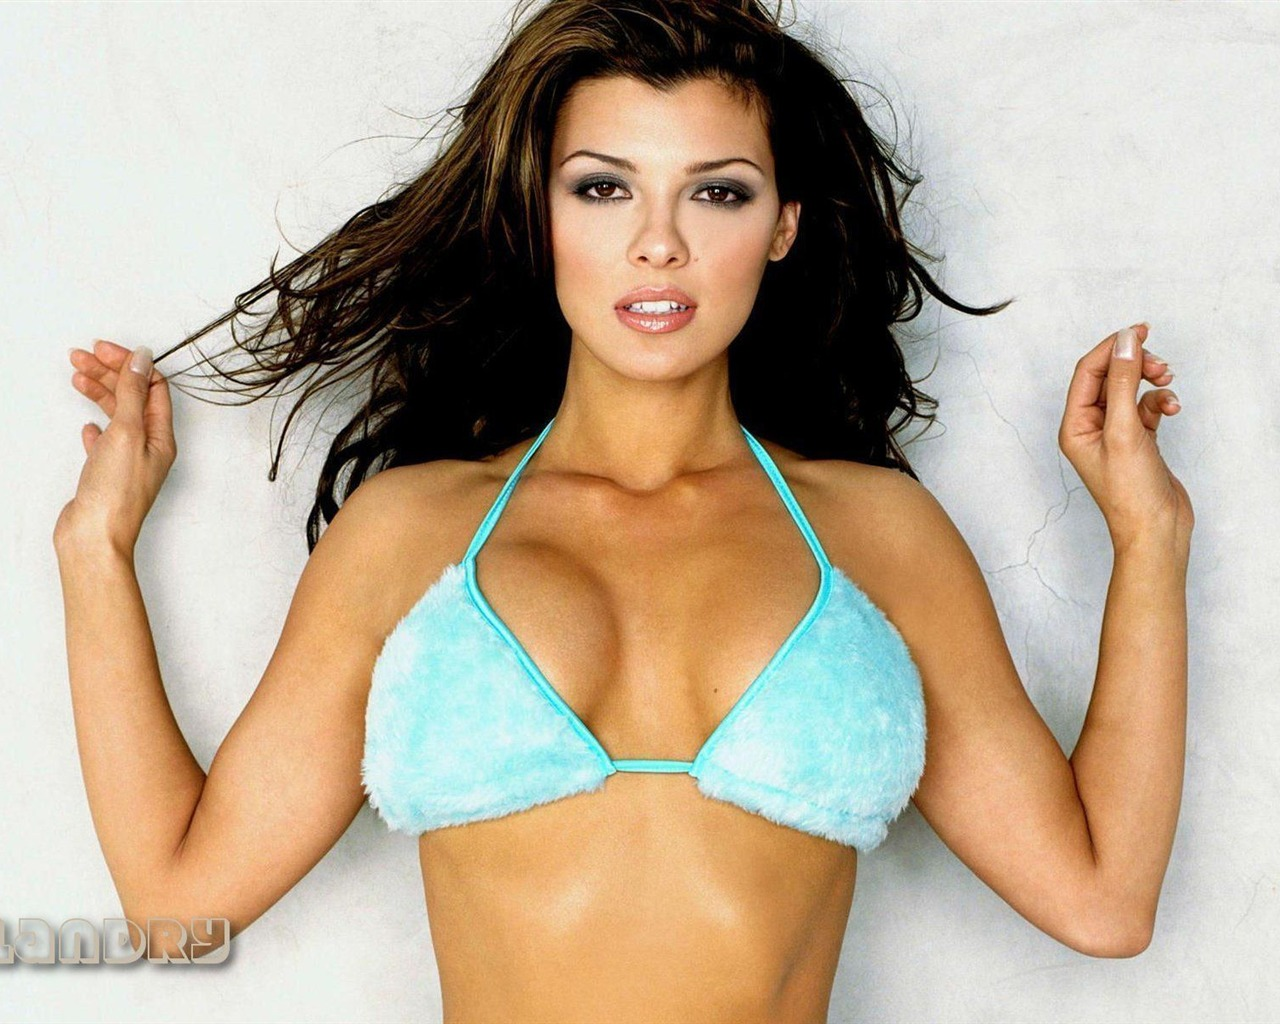 Ali Landry #008 - 1280x1024 Wallpapers Pictures Photos Images